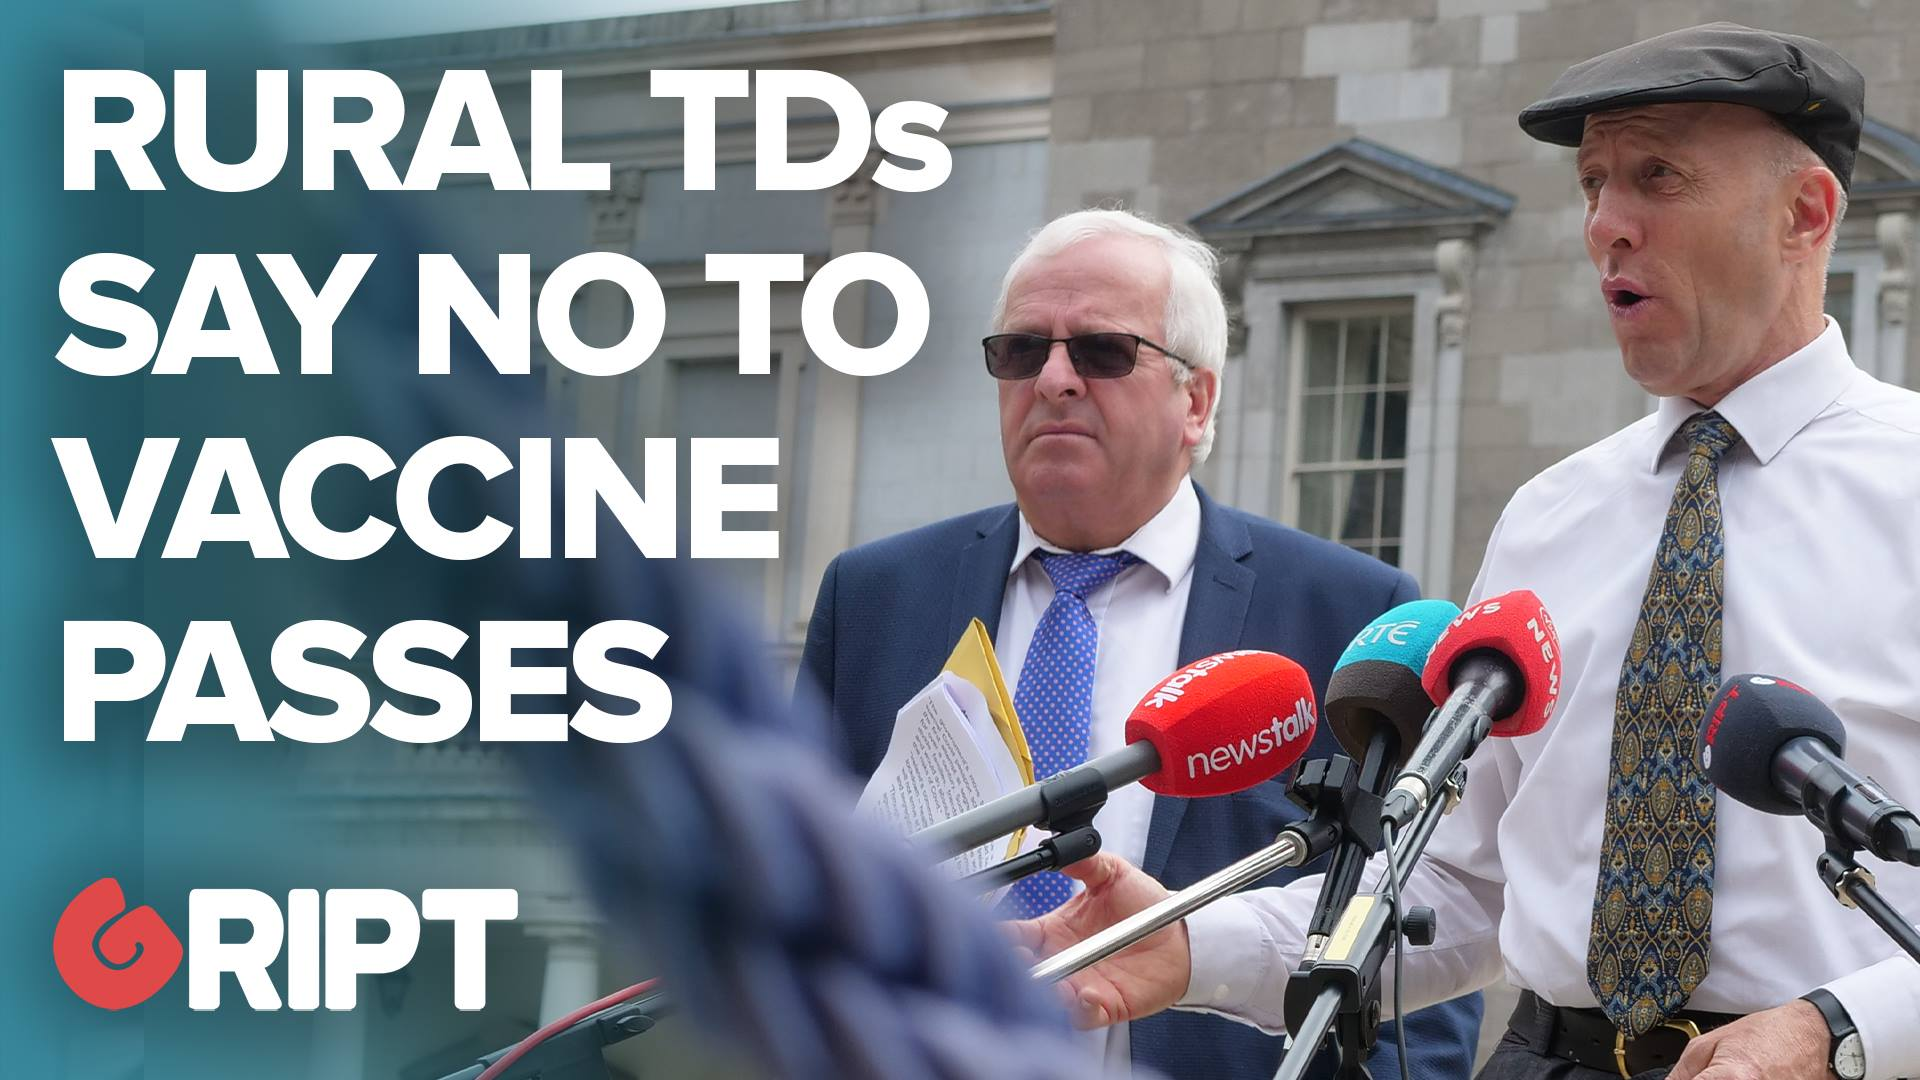 """""""STAND UP FOR THE MINORTIY"""": Rural Independent TDs slam vaccine passports"""